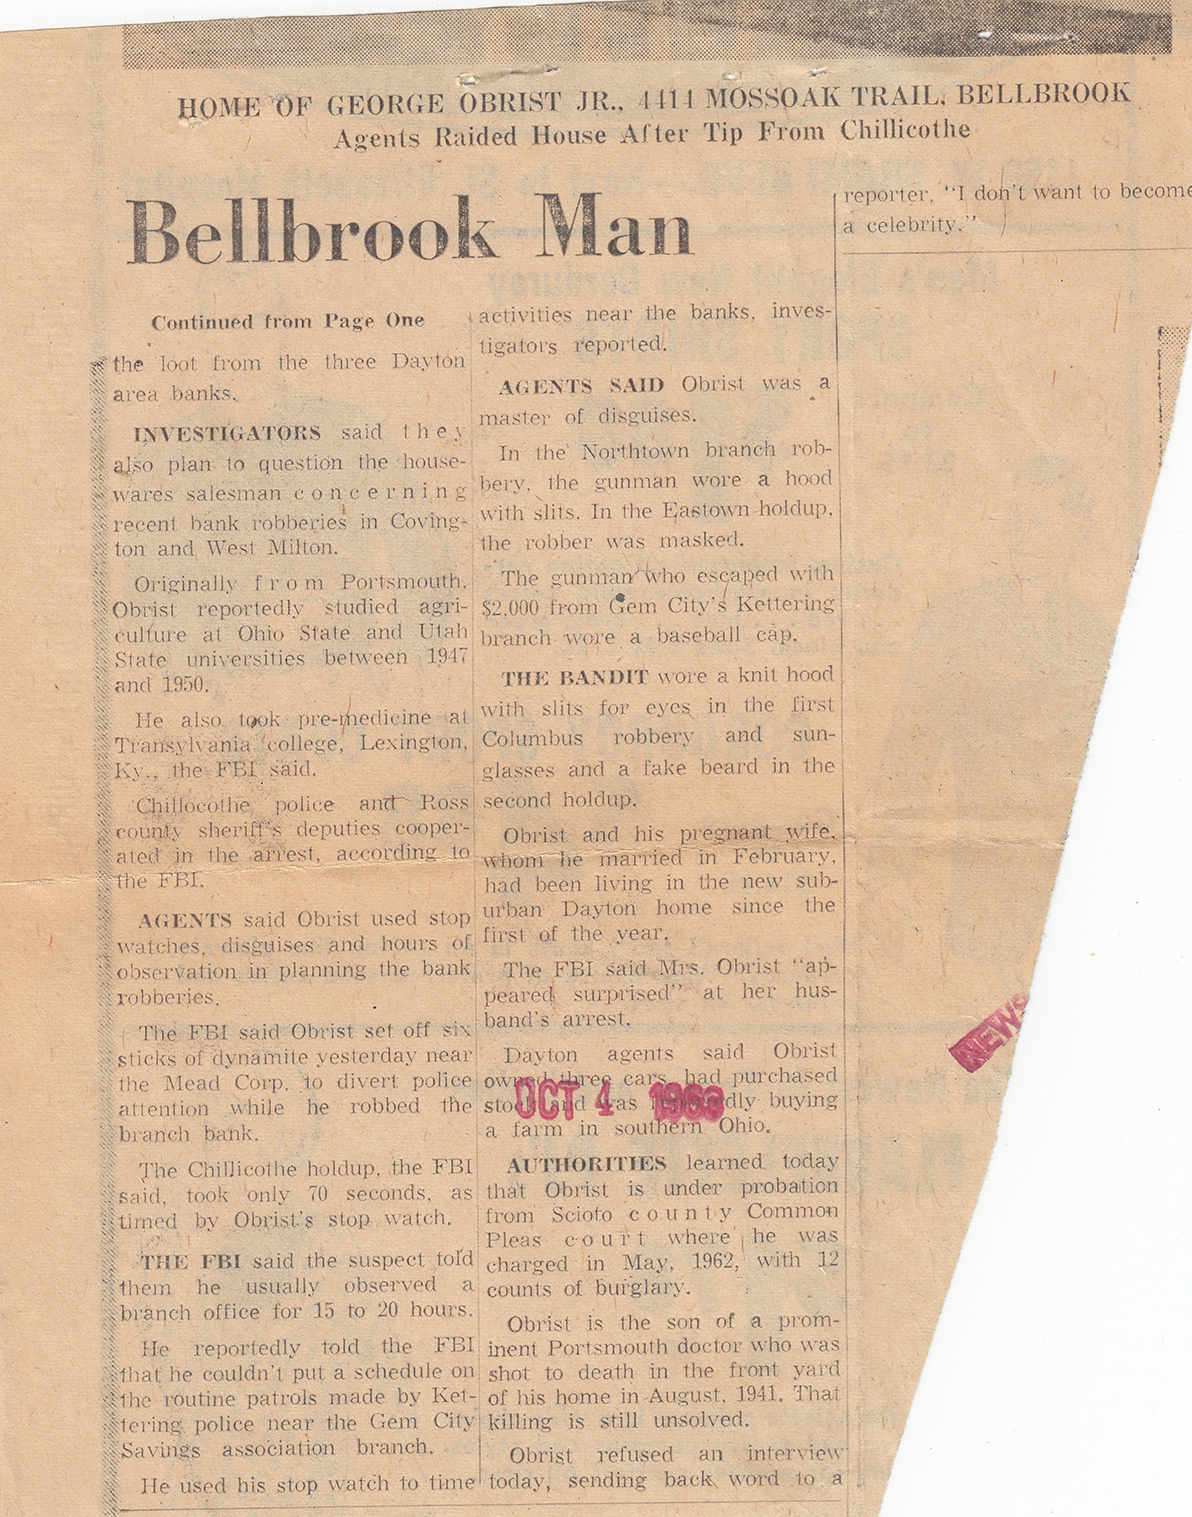 Bellbrook Man Charged with Six Robberies (continuation), Dayton Journal Herald, 5 Oct 1963